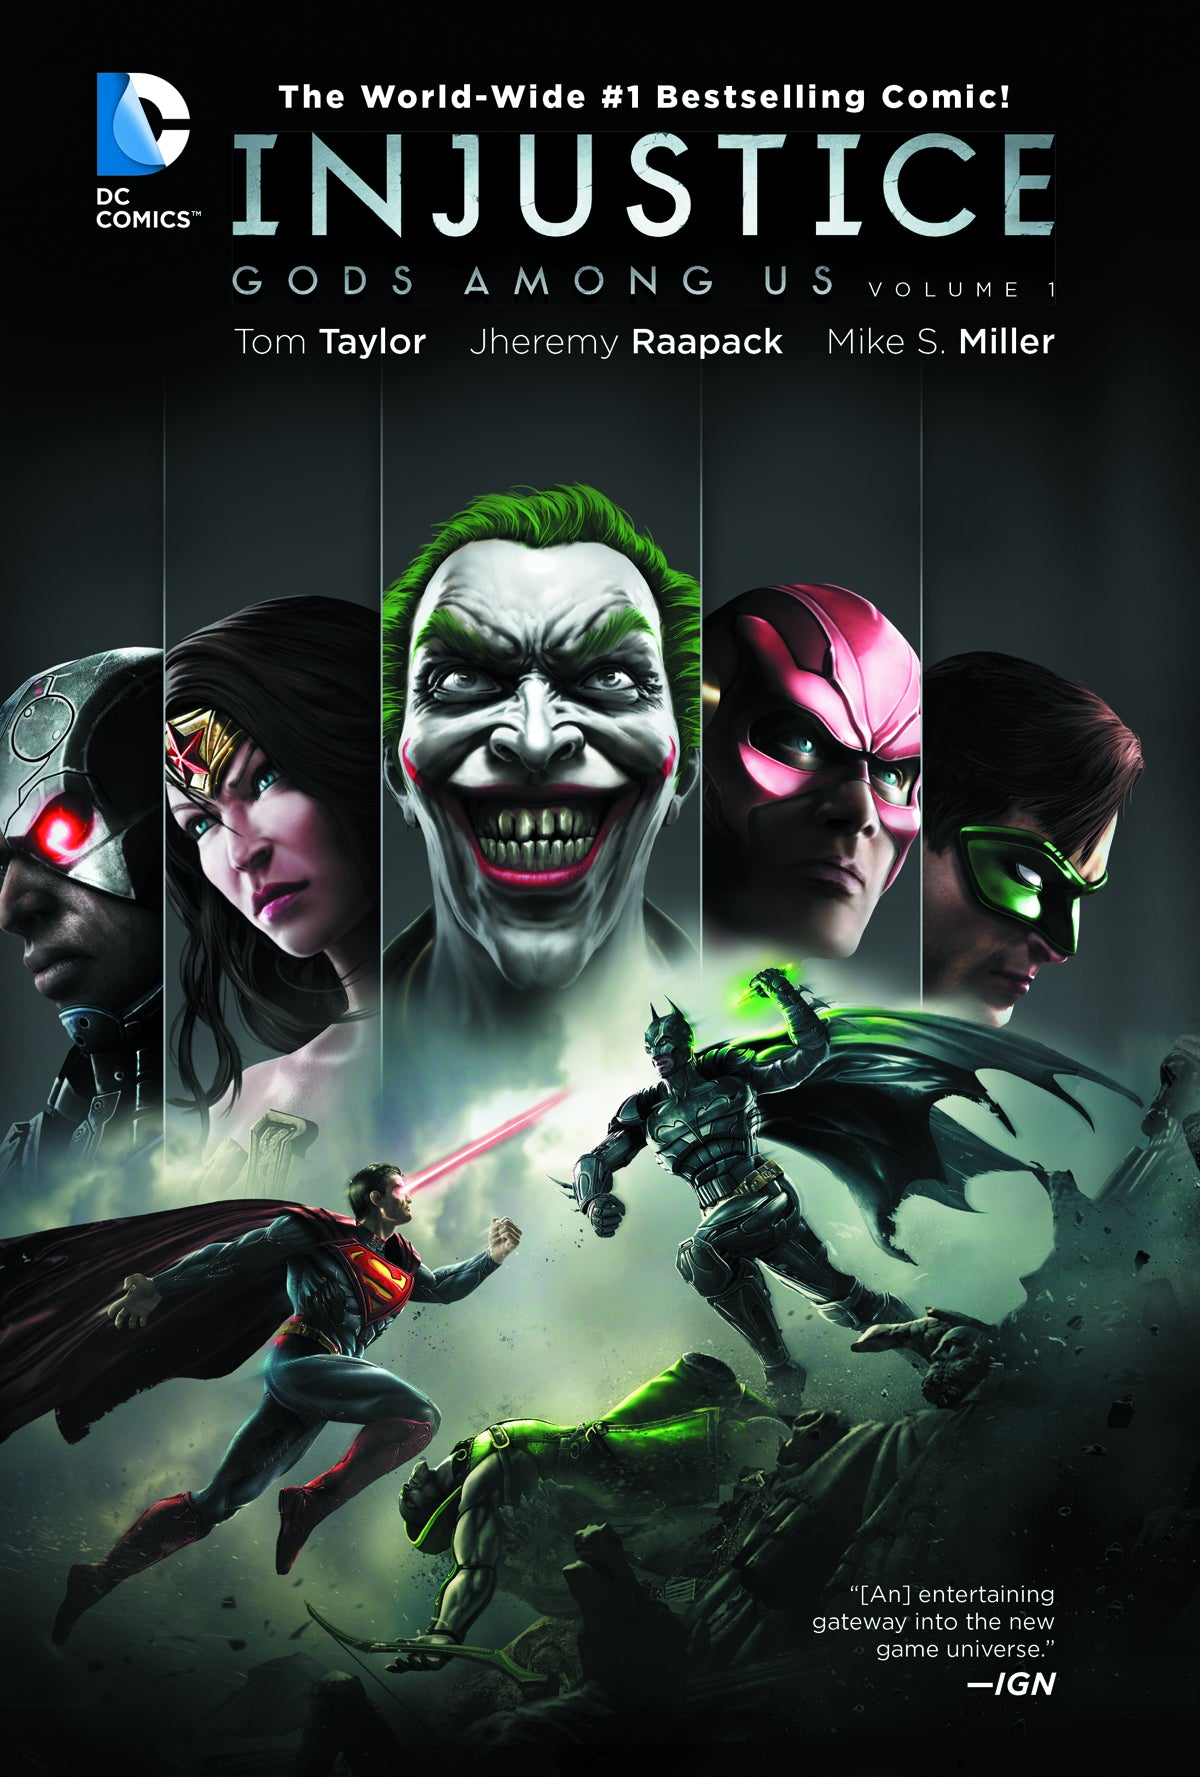 INJUSTICE GODS AMONG US TP VOL 01 | Game Master's Emporium (The New GME)